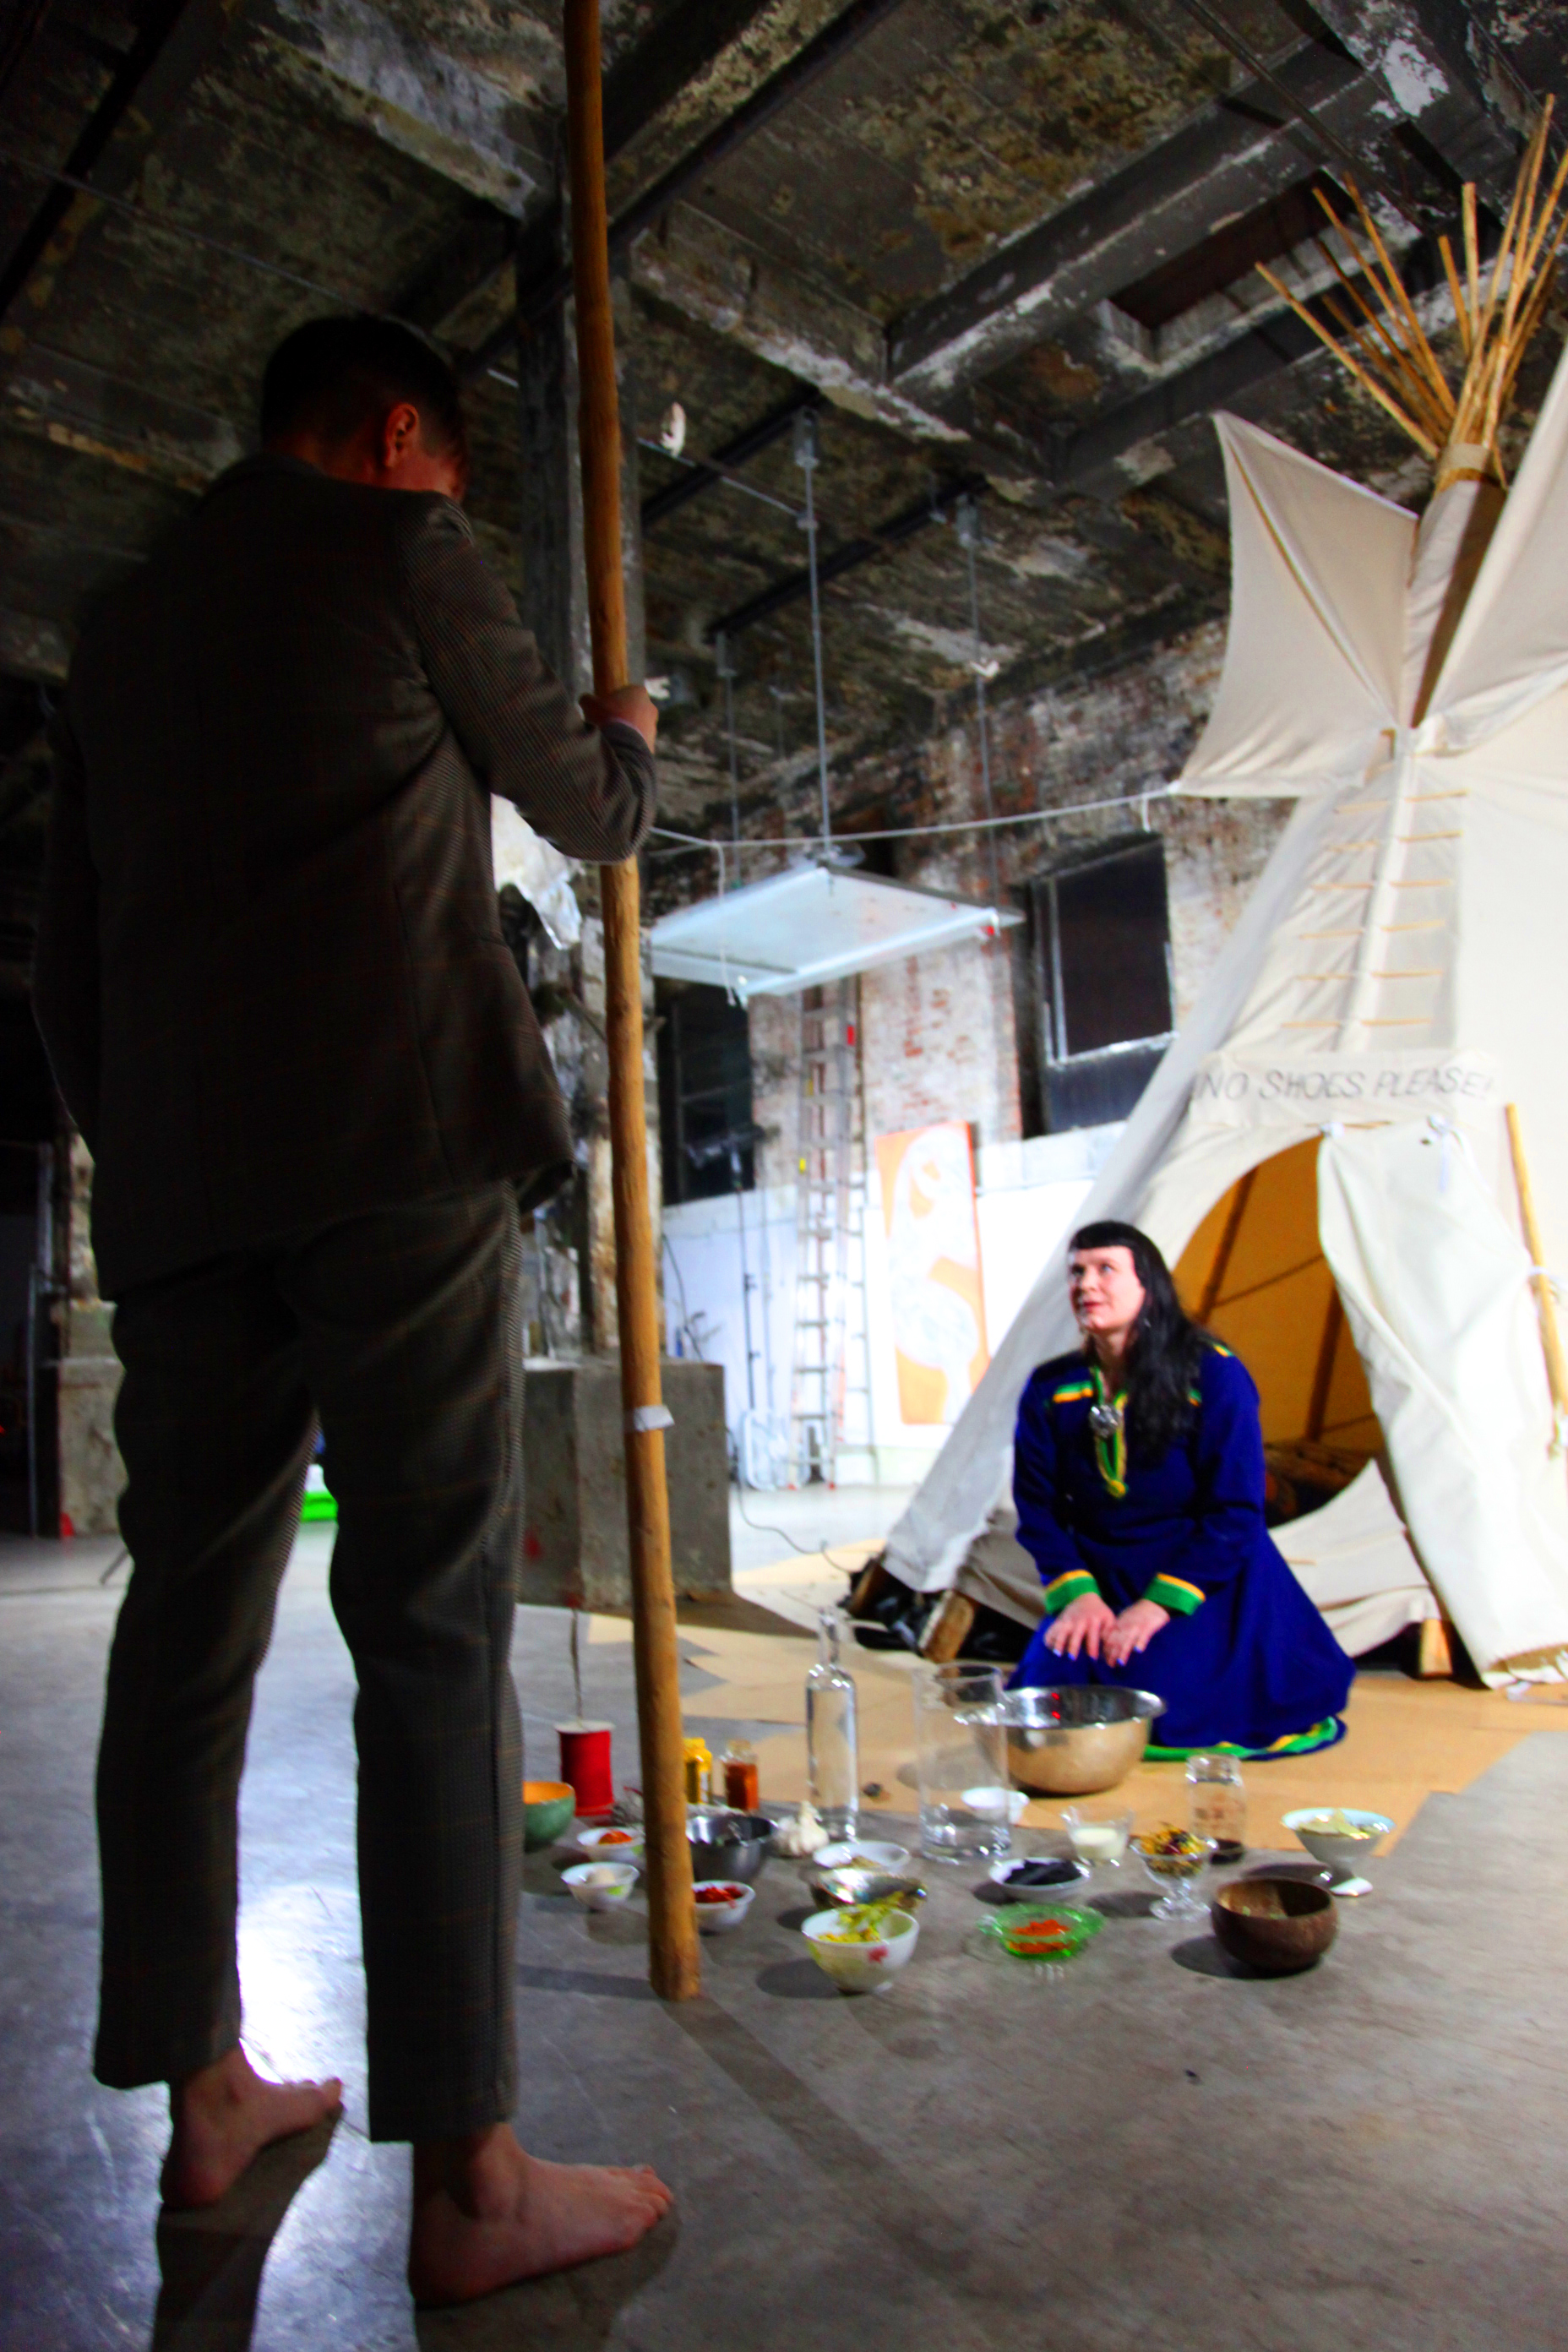 TEEPEE NAMING CEREMONY - Sunday, Oct 28, 2018 8pmIntimate ceremony for 14 guests conducted by current Sea Artists @ Mothership NYC:Kirsty Whiten, Visual Artist (Scotland)Marita Isobel Solberg, Performance Artist/Vocalist (Norway)Please sign up here.